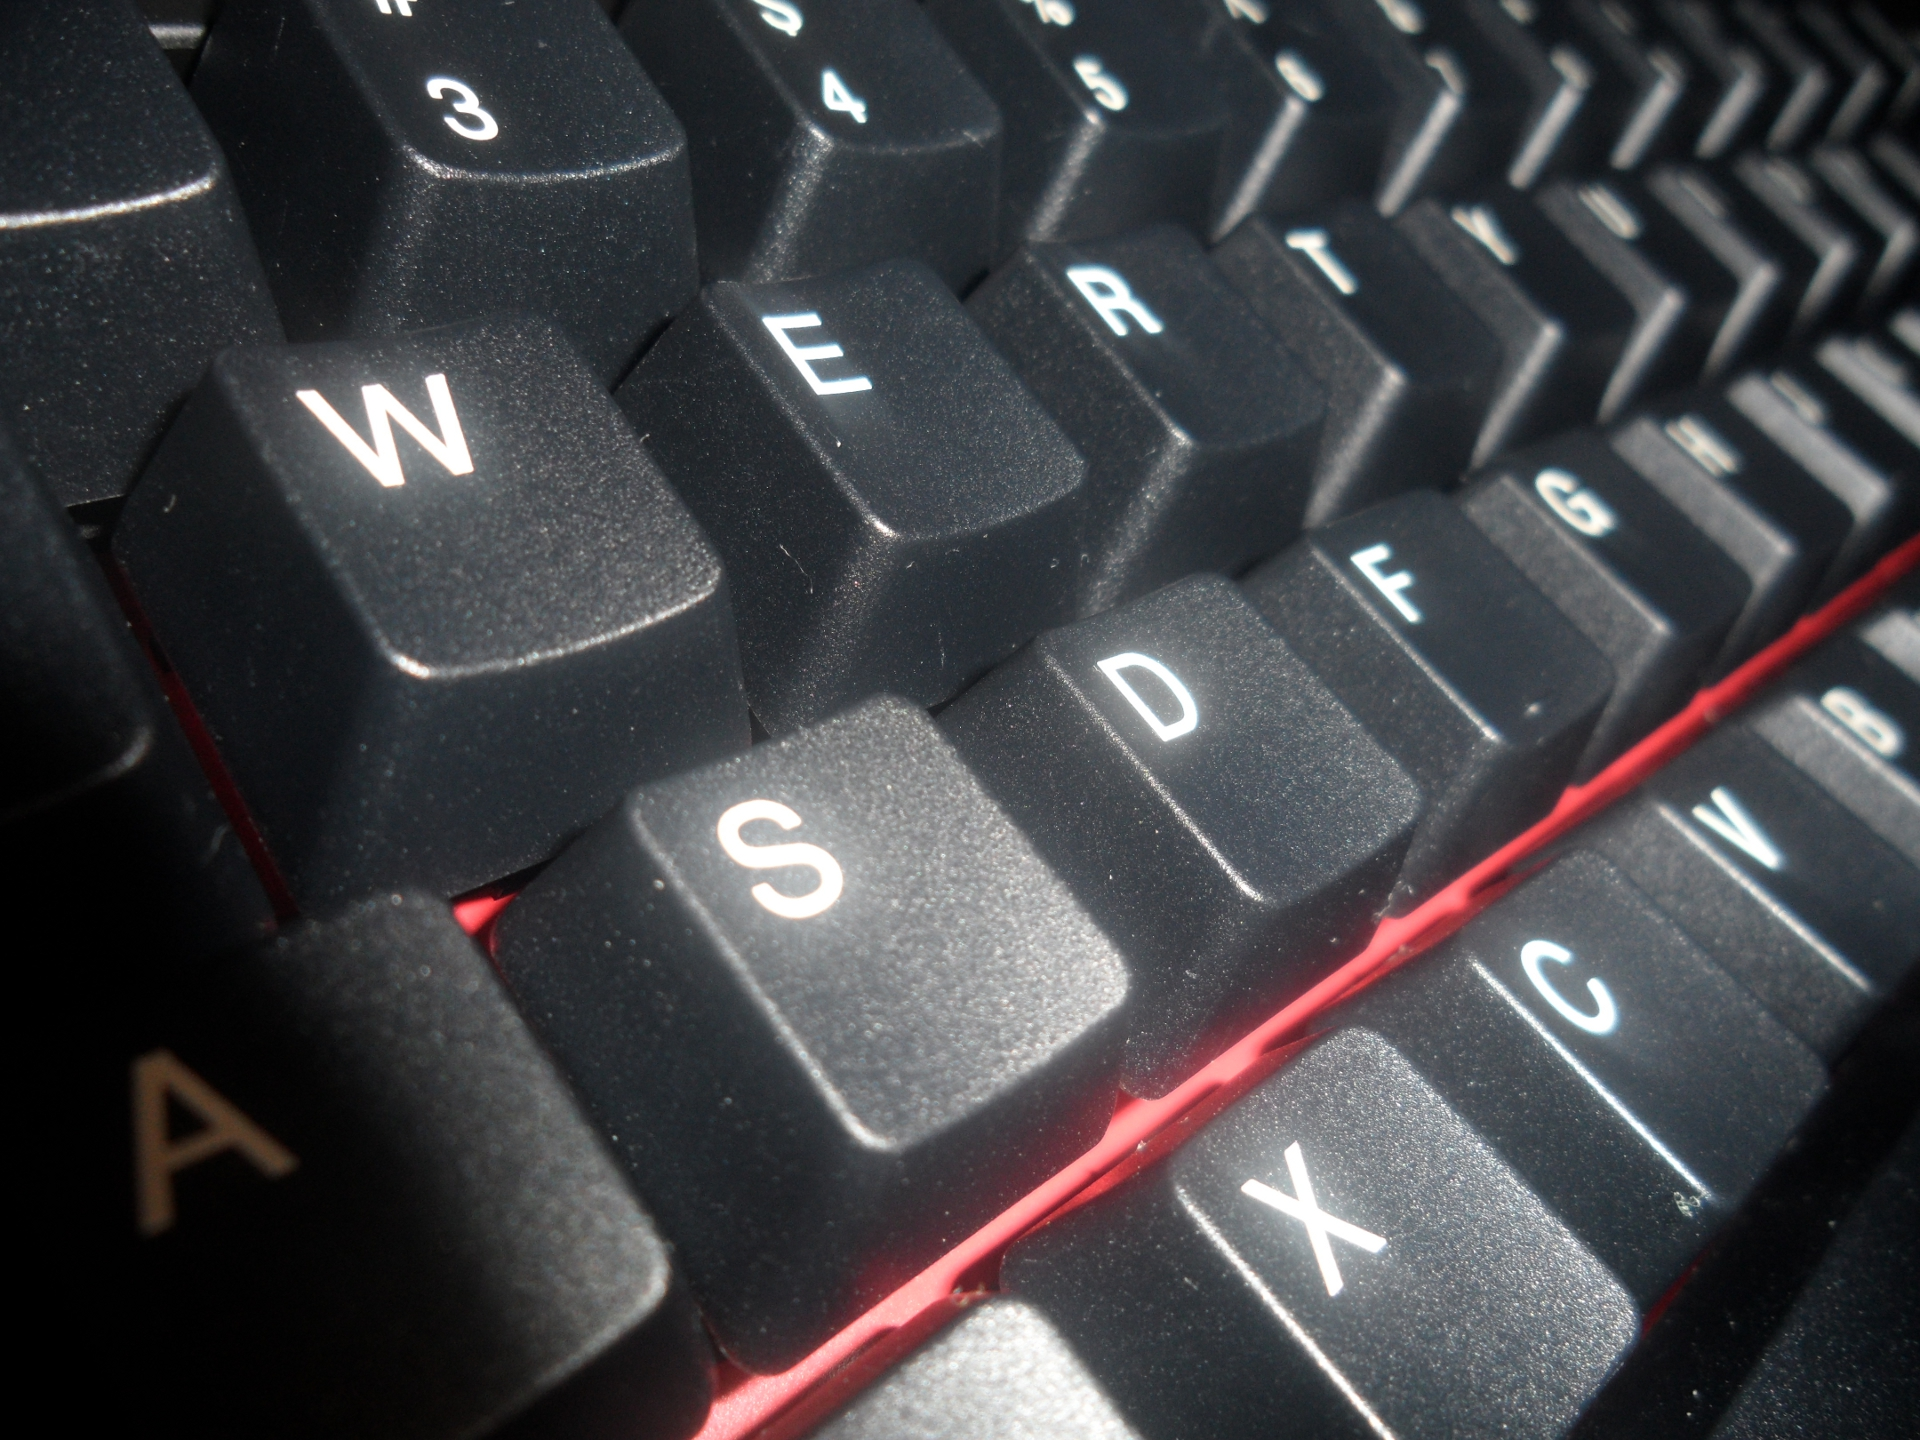 Keyboard Wallpapers, Pictures, Images